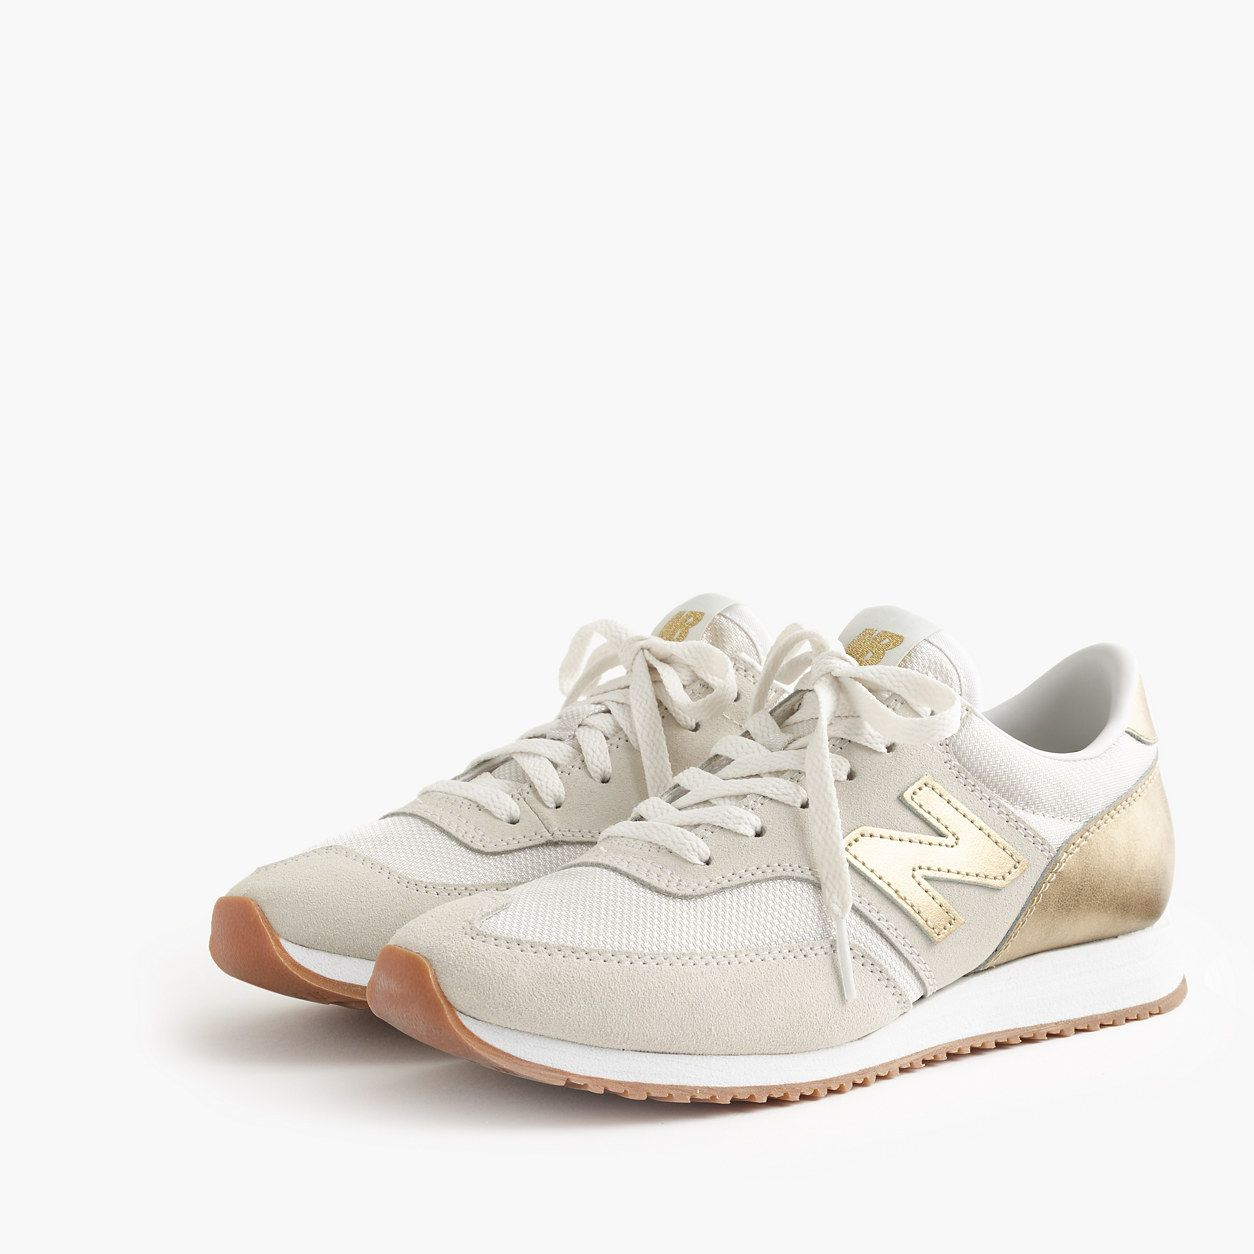 new balance beige and white